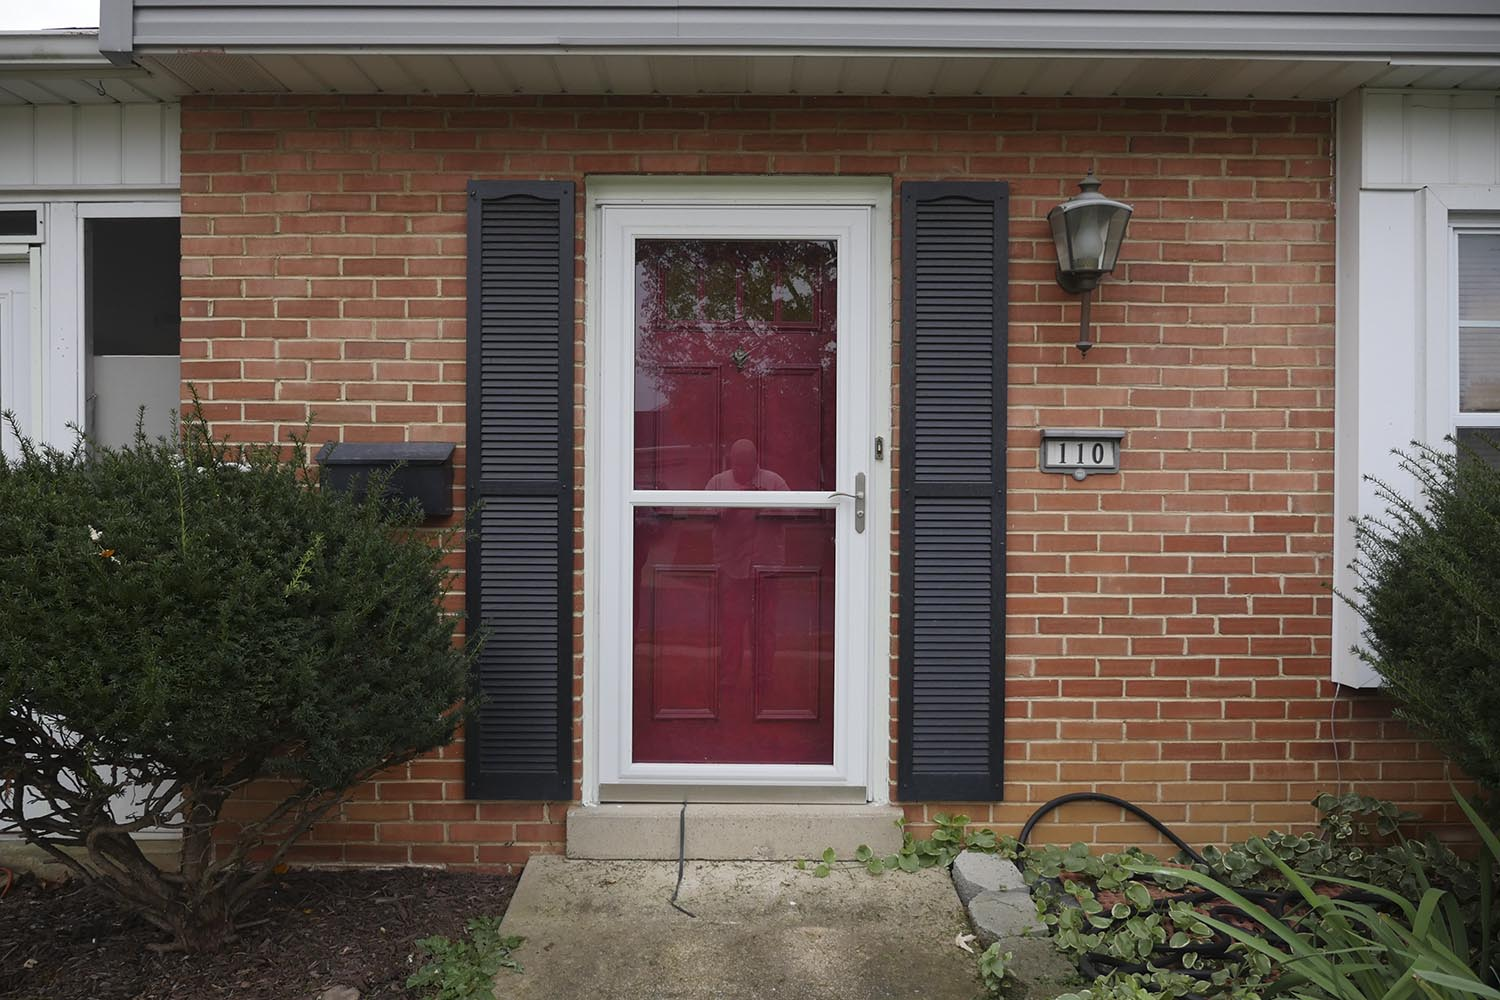 Check Out The Update To This Entry Door With Before After Photos Customer Had A New Red Storm Installed Their